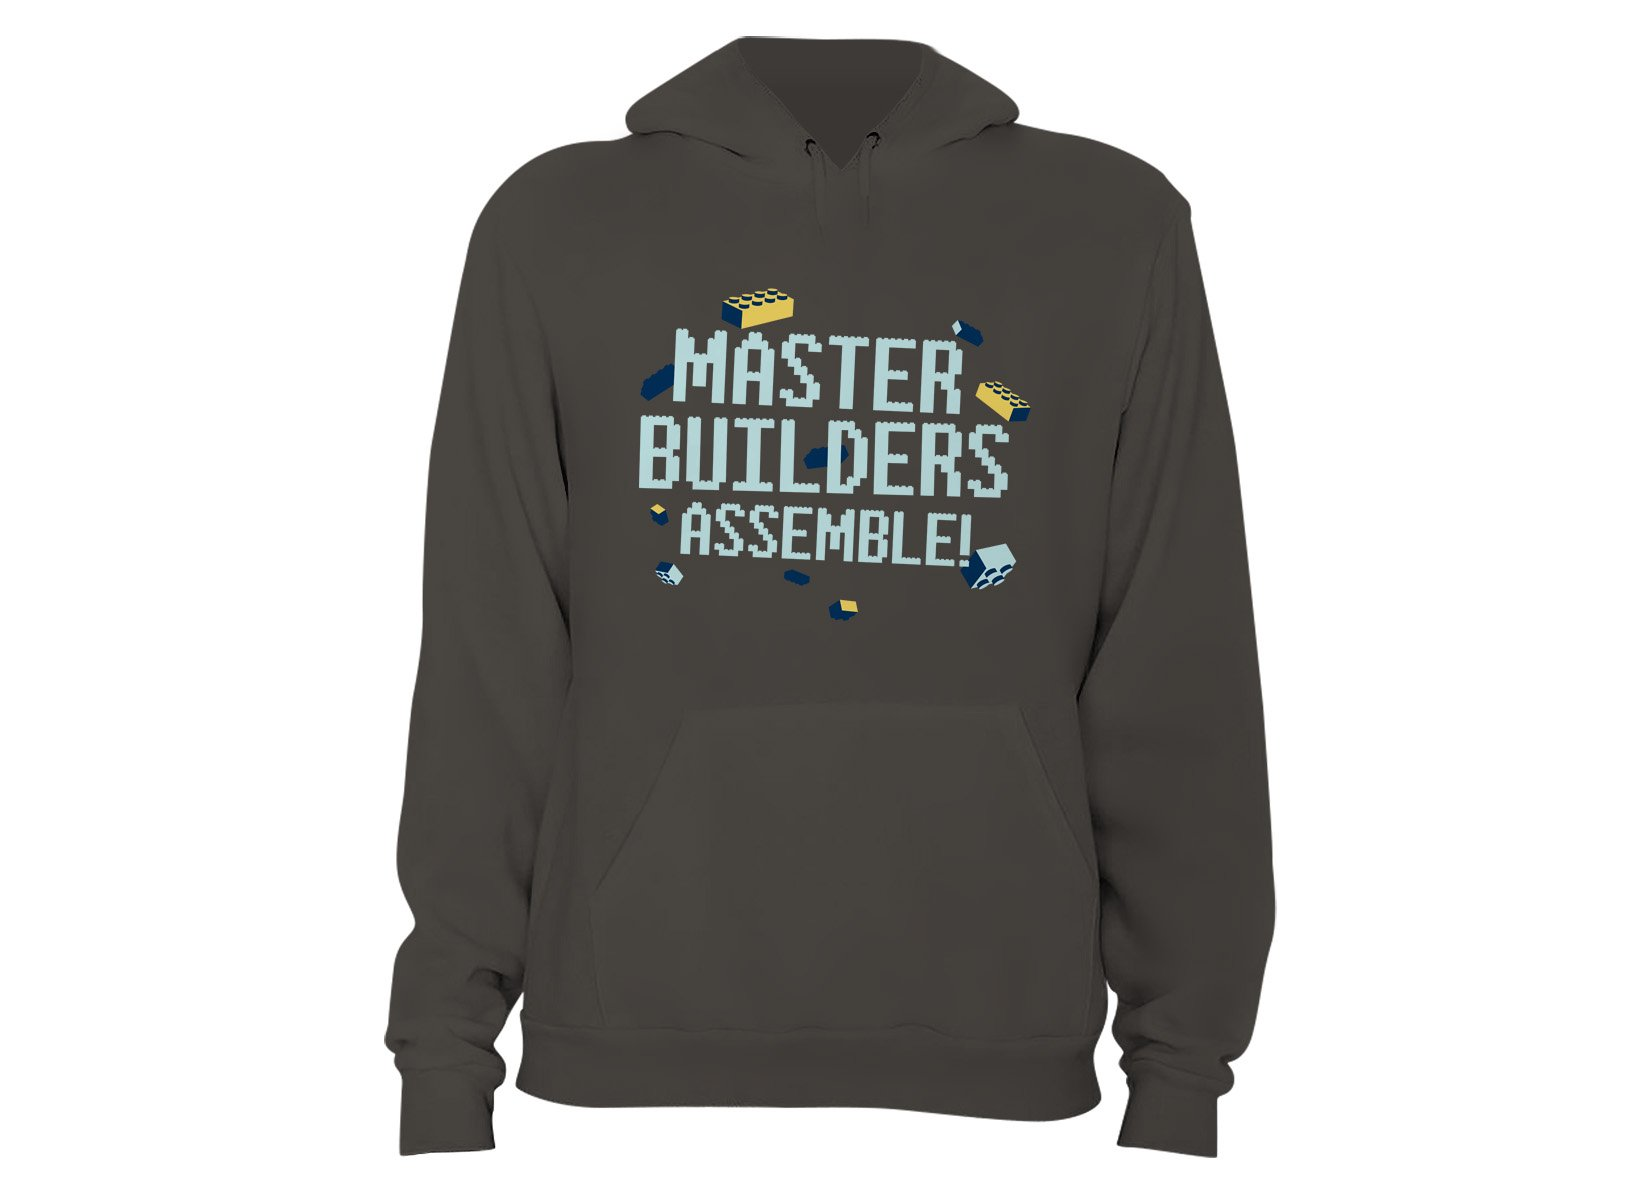 Master Builders Assemble! on Hoodie